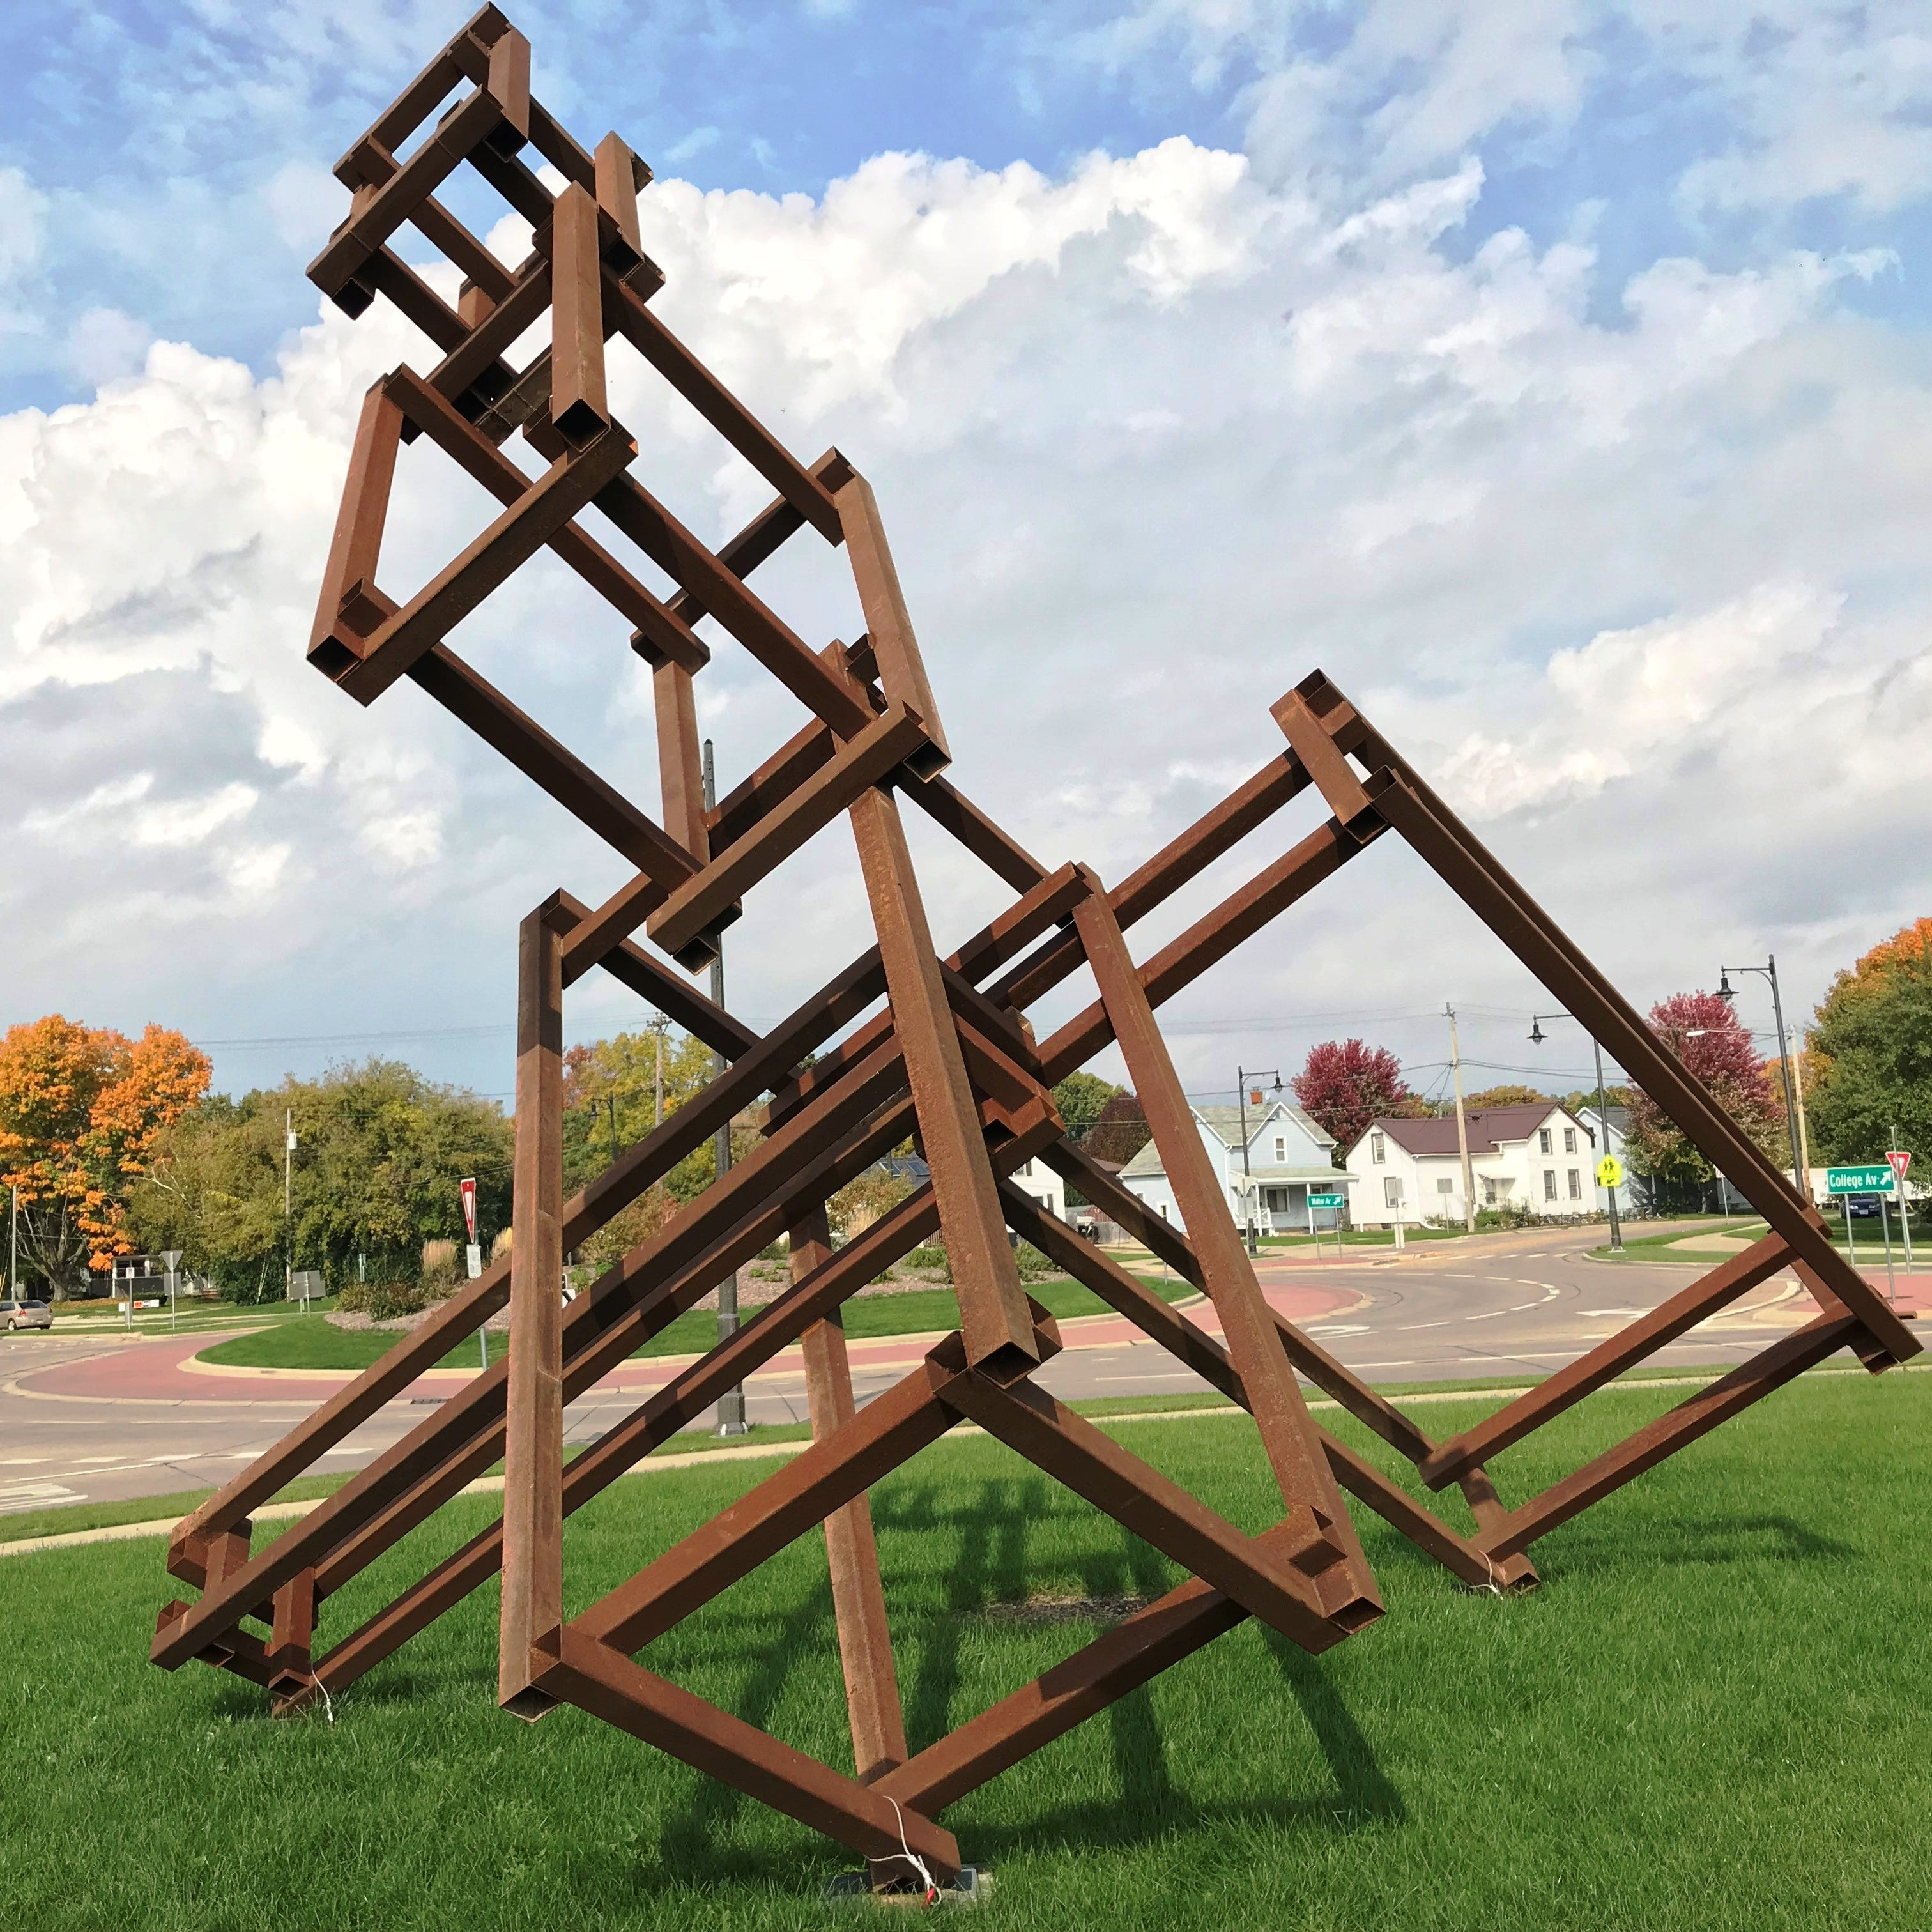 New Appleton committee will bring oversight to public art displays